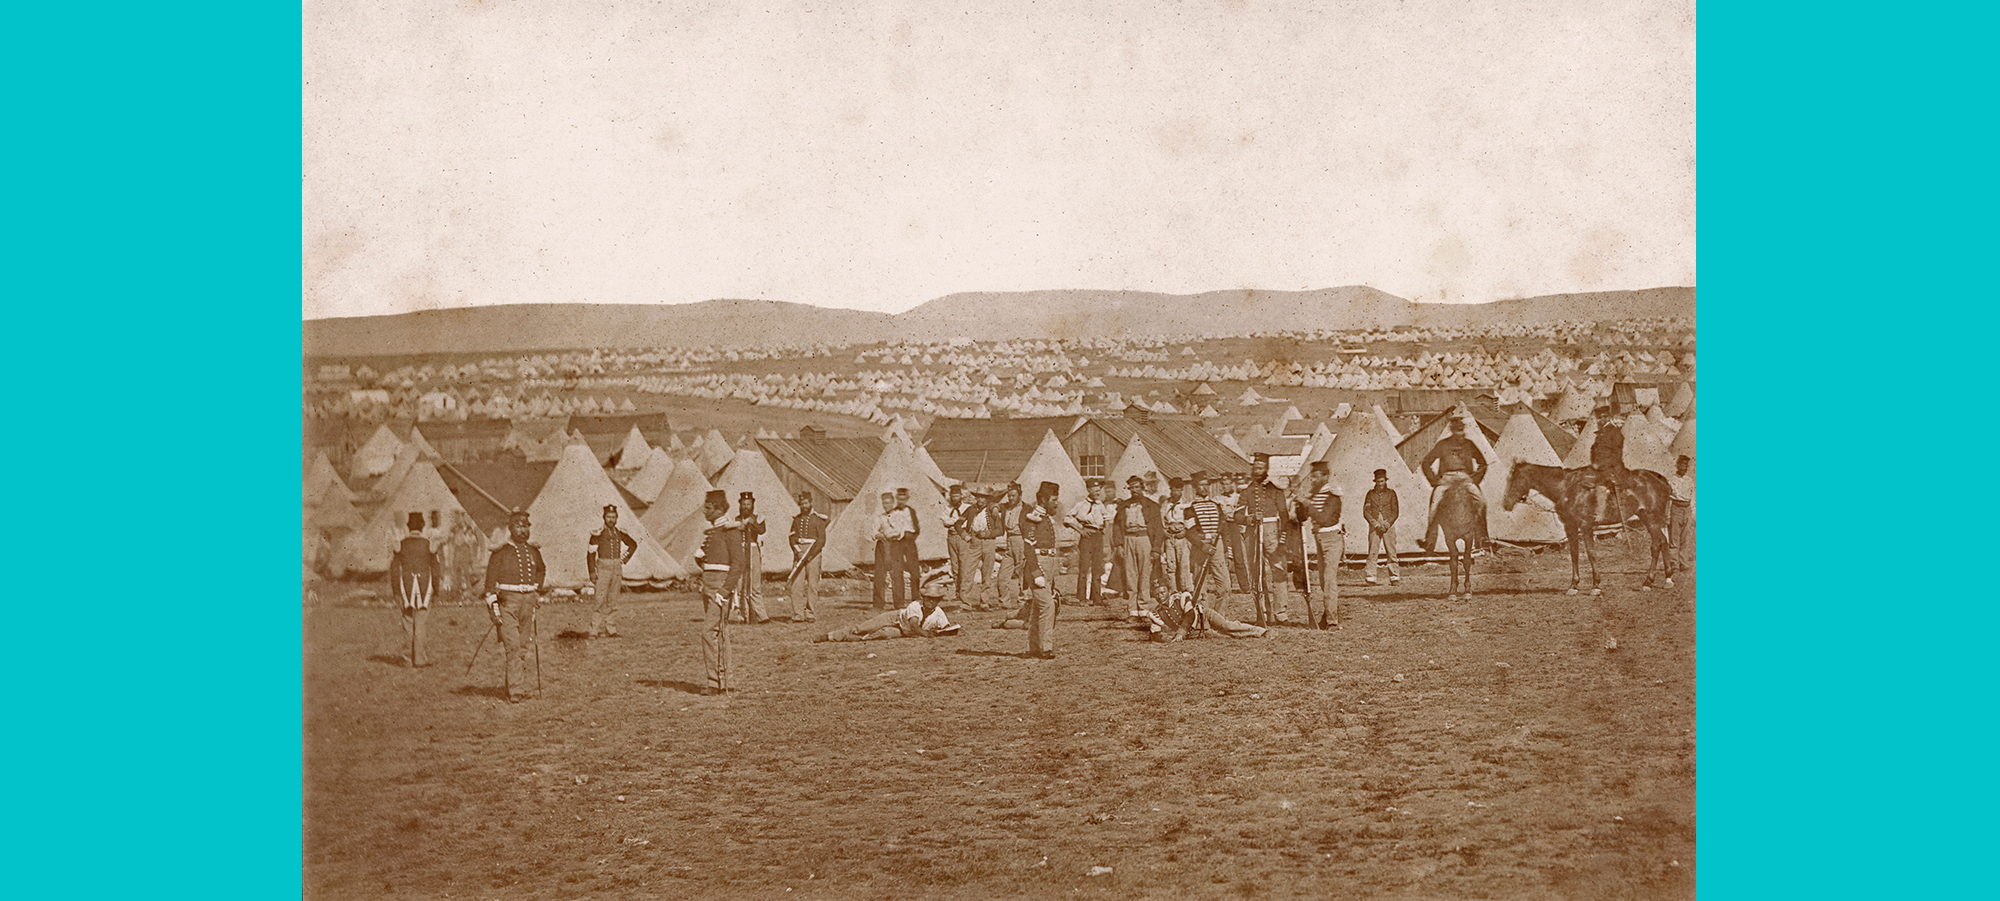 photograph taken of men at a camp standing in soldier uniform in front of tents